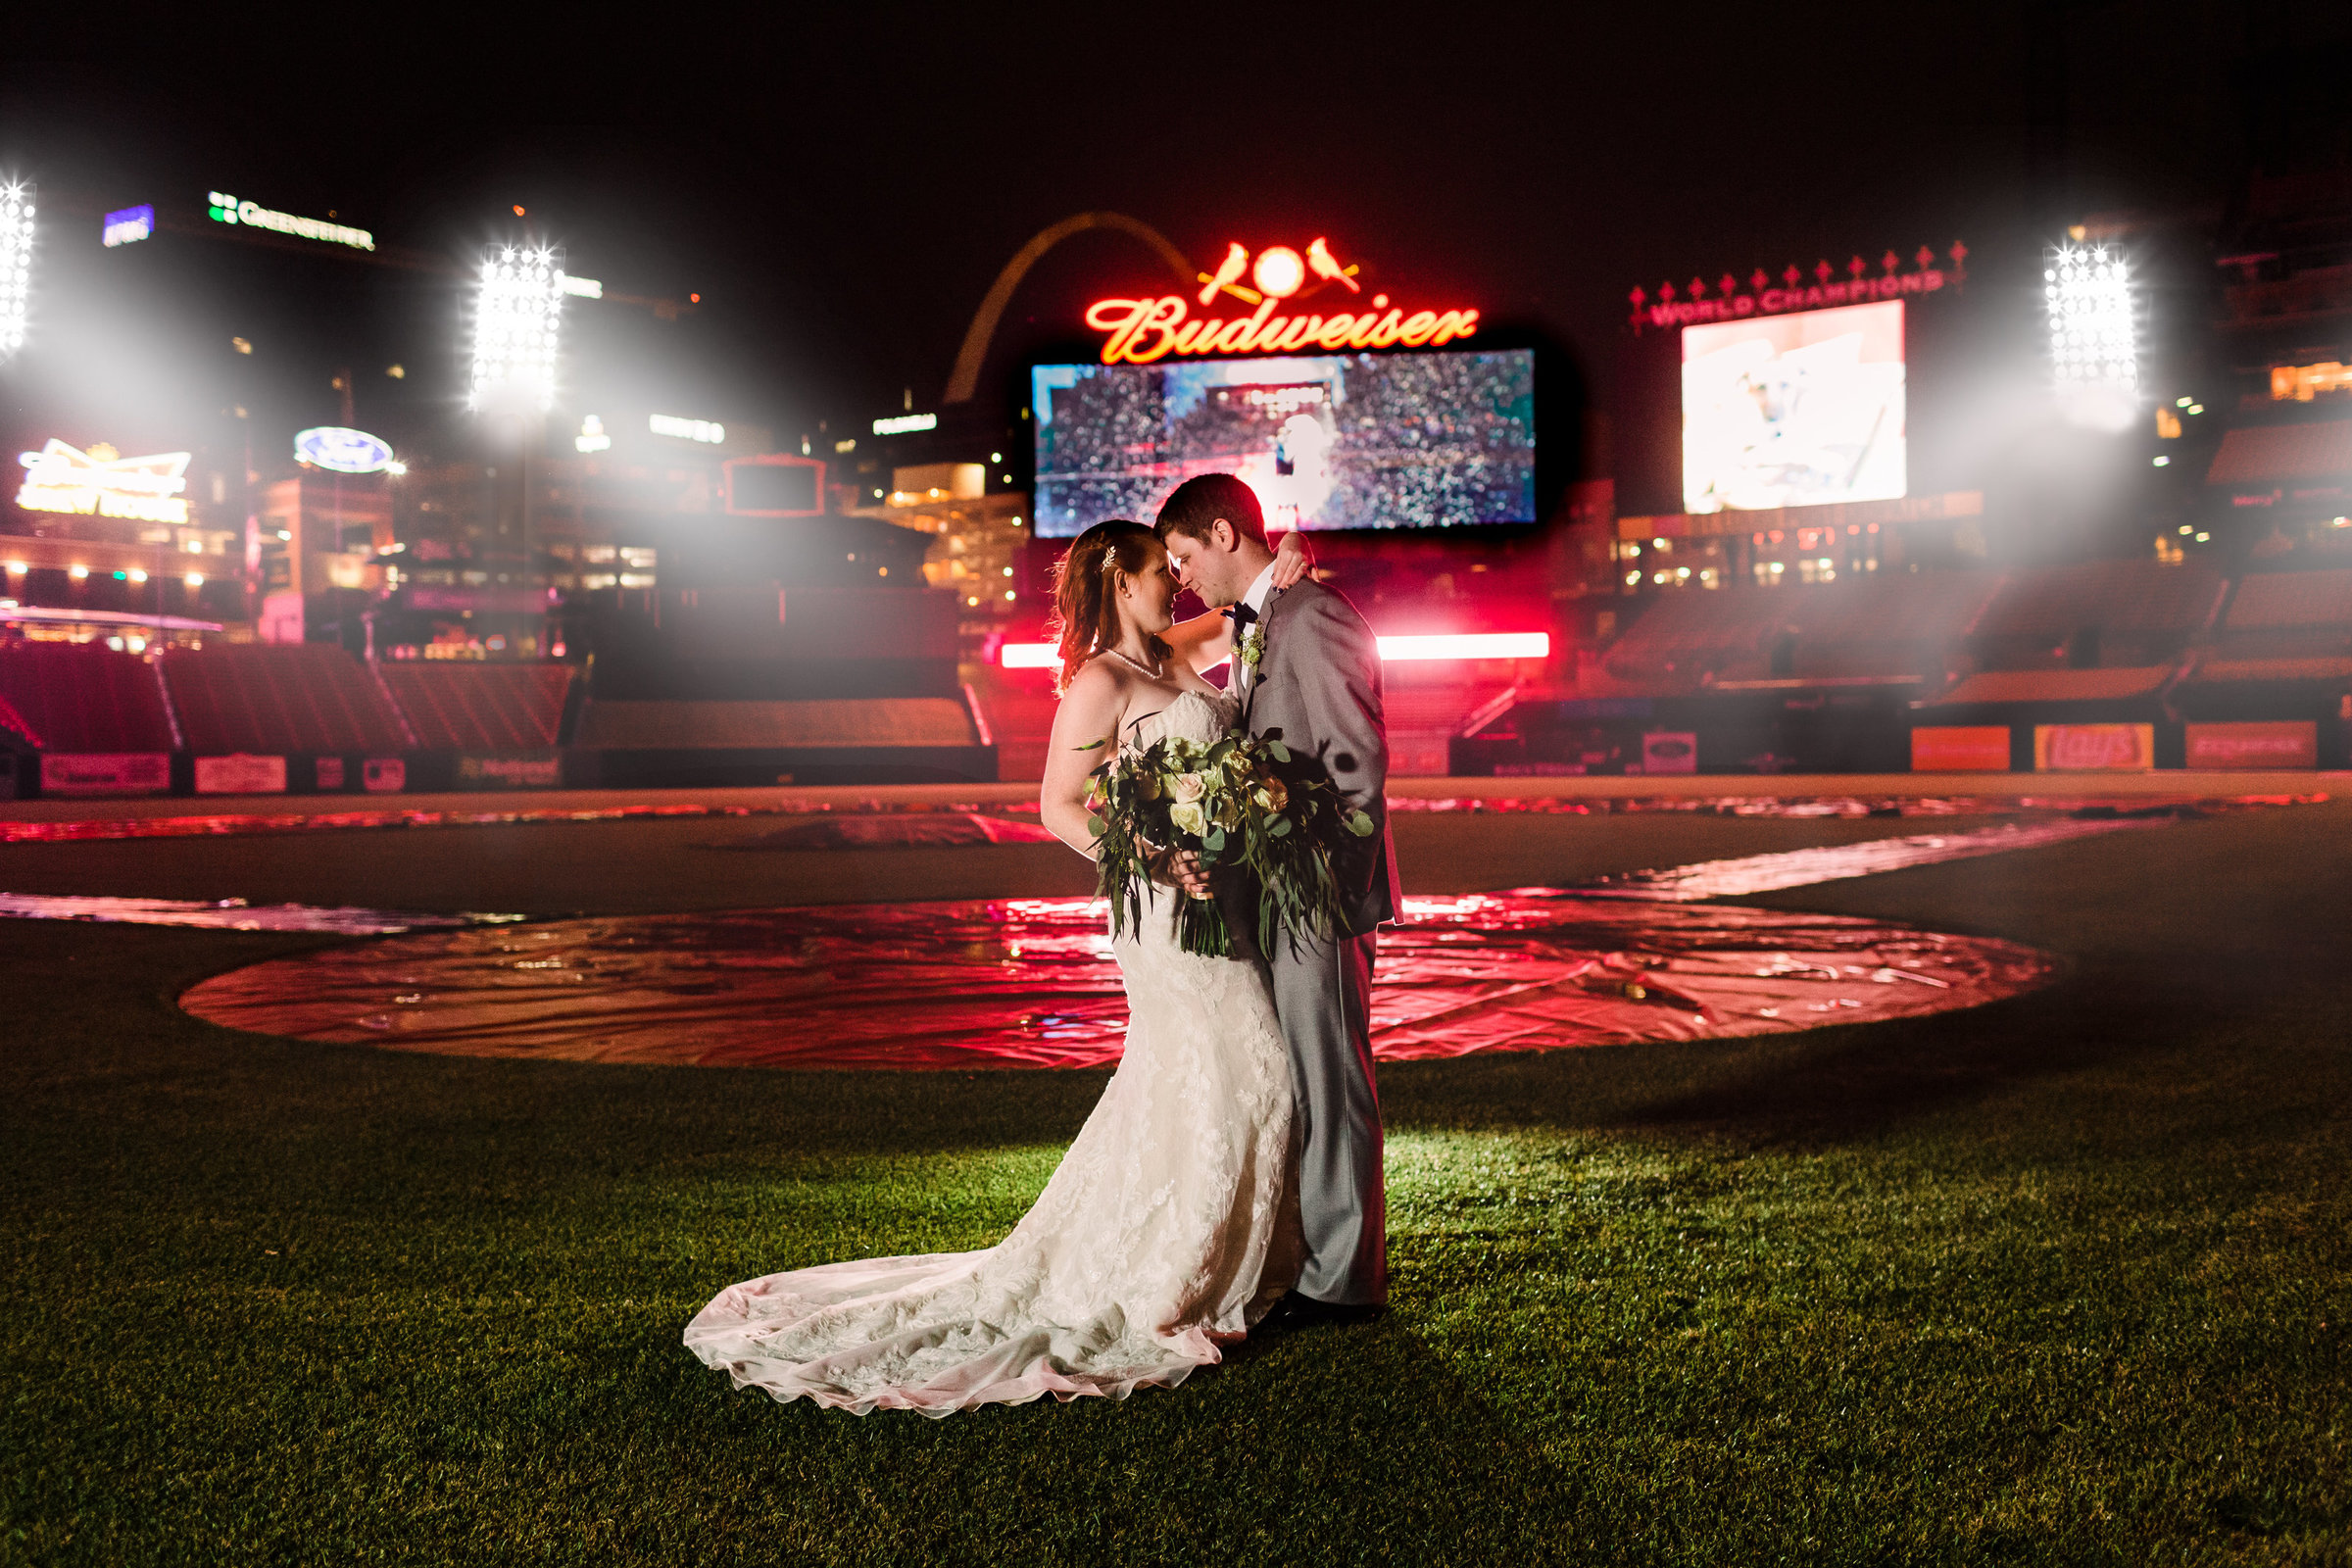 Kailyn-Adam-Busch-Stadium-Wedding-Jackelynn-Noel-Photography-40